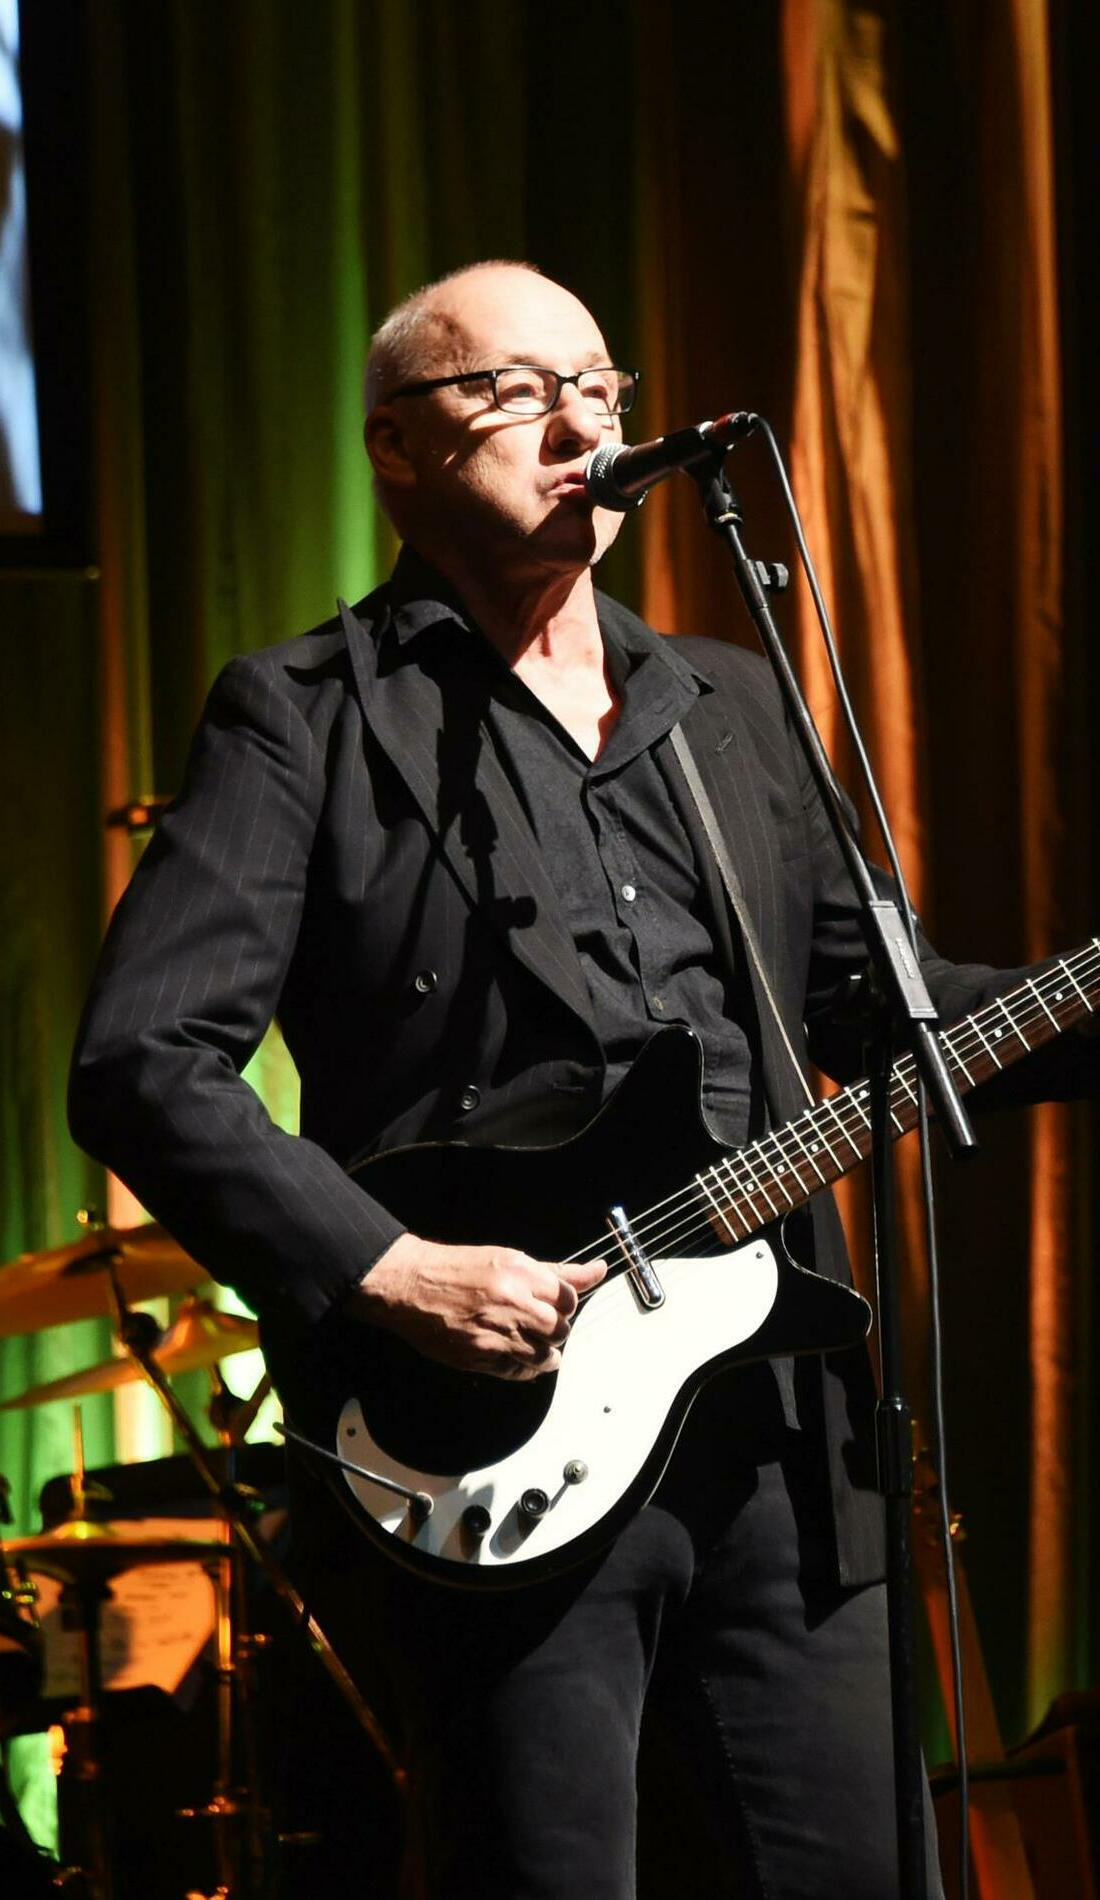 A Mark Knopfler live event